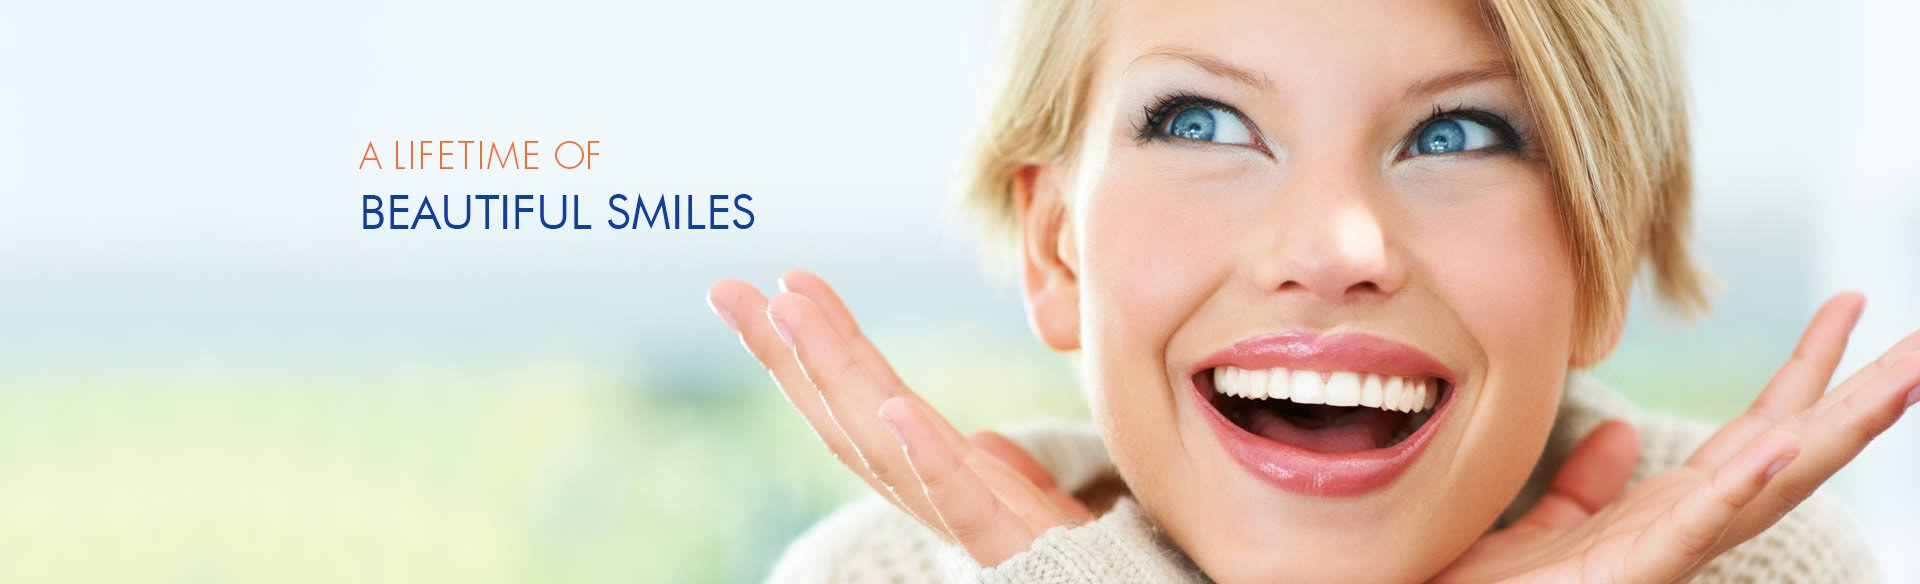 Dr. Carlos Garcia near Glendale CA, Image Of A lifetime of Beautiful Smile